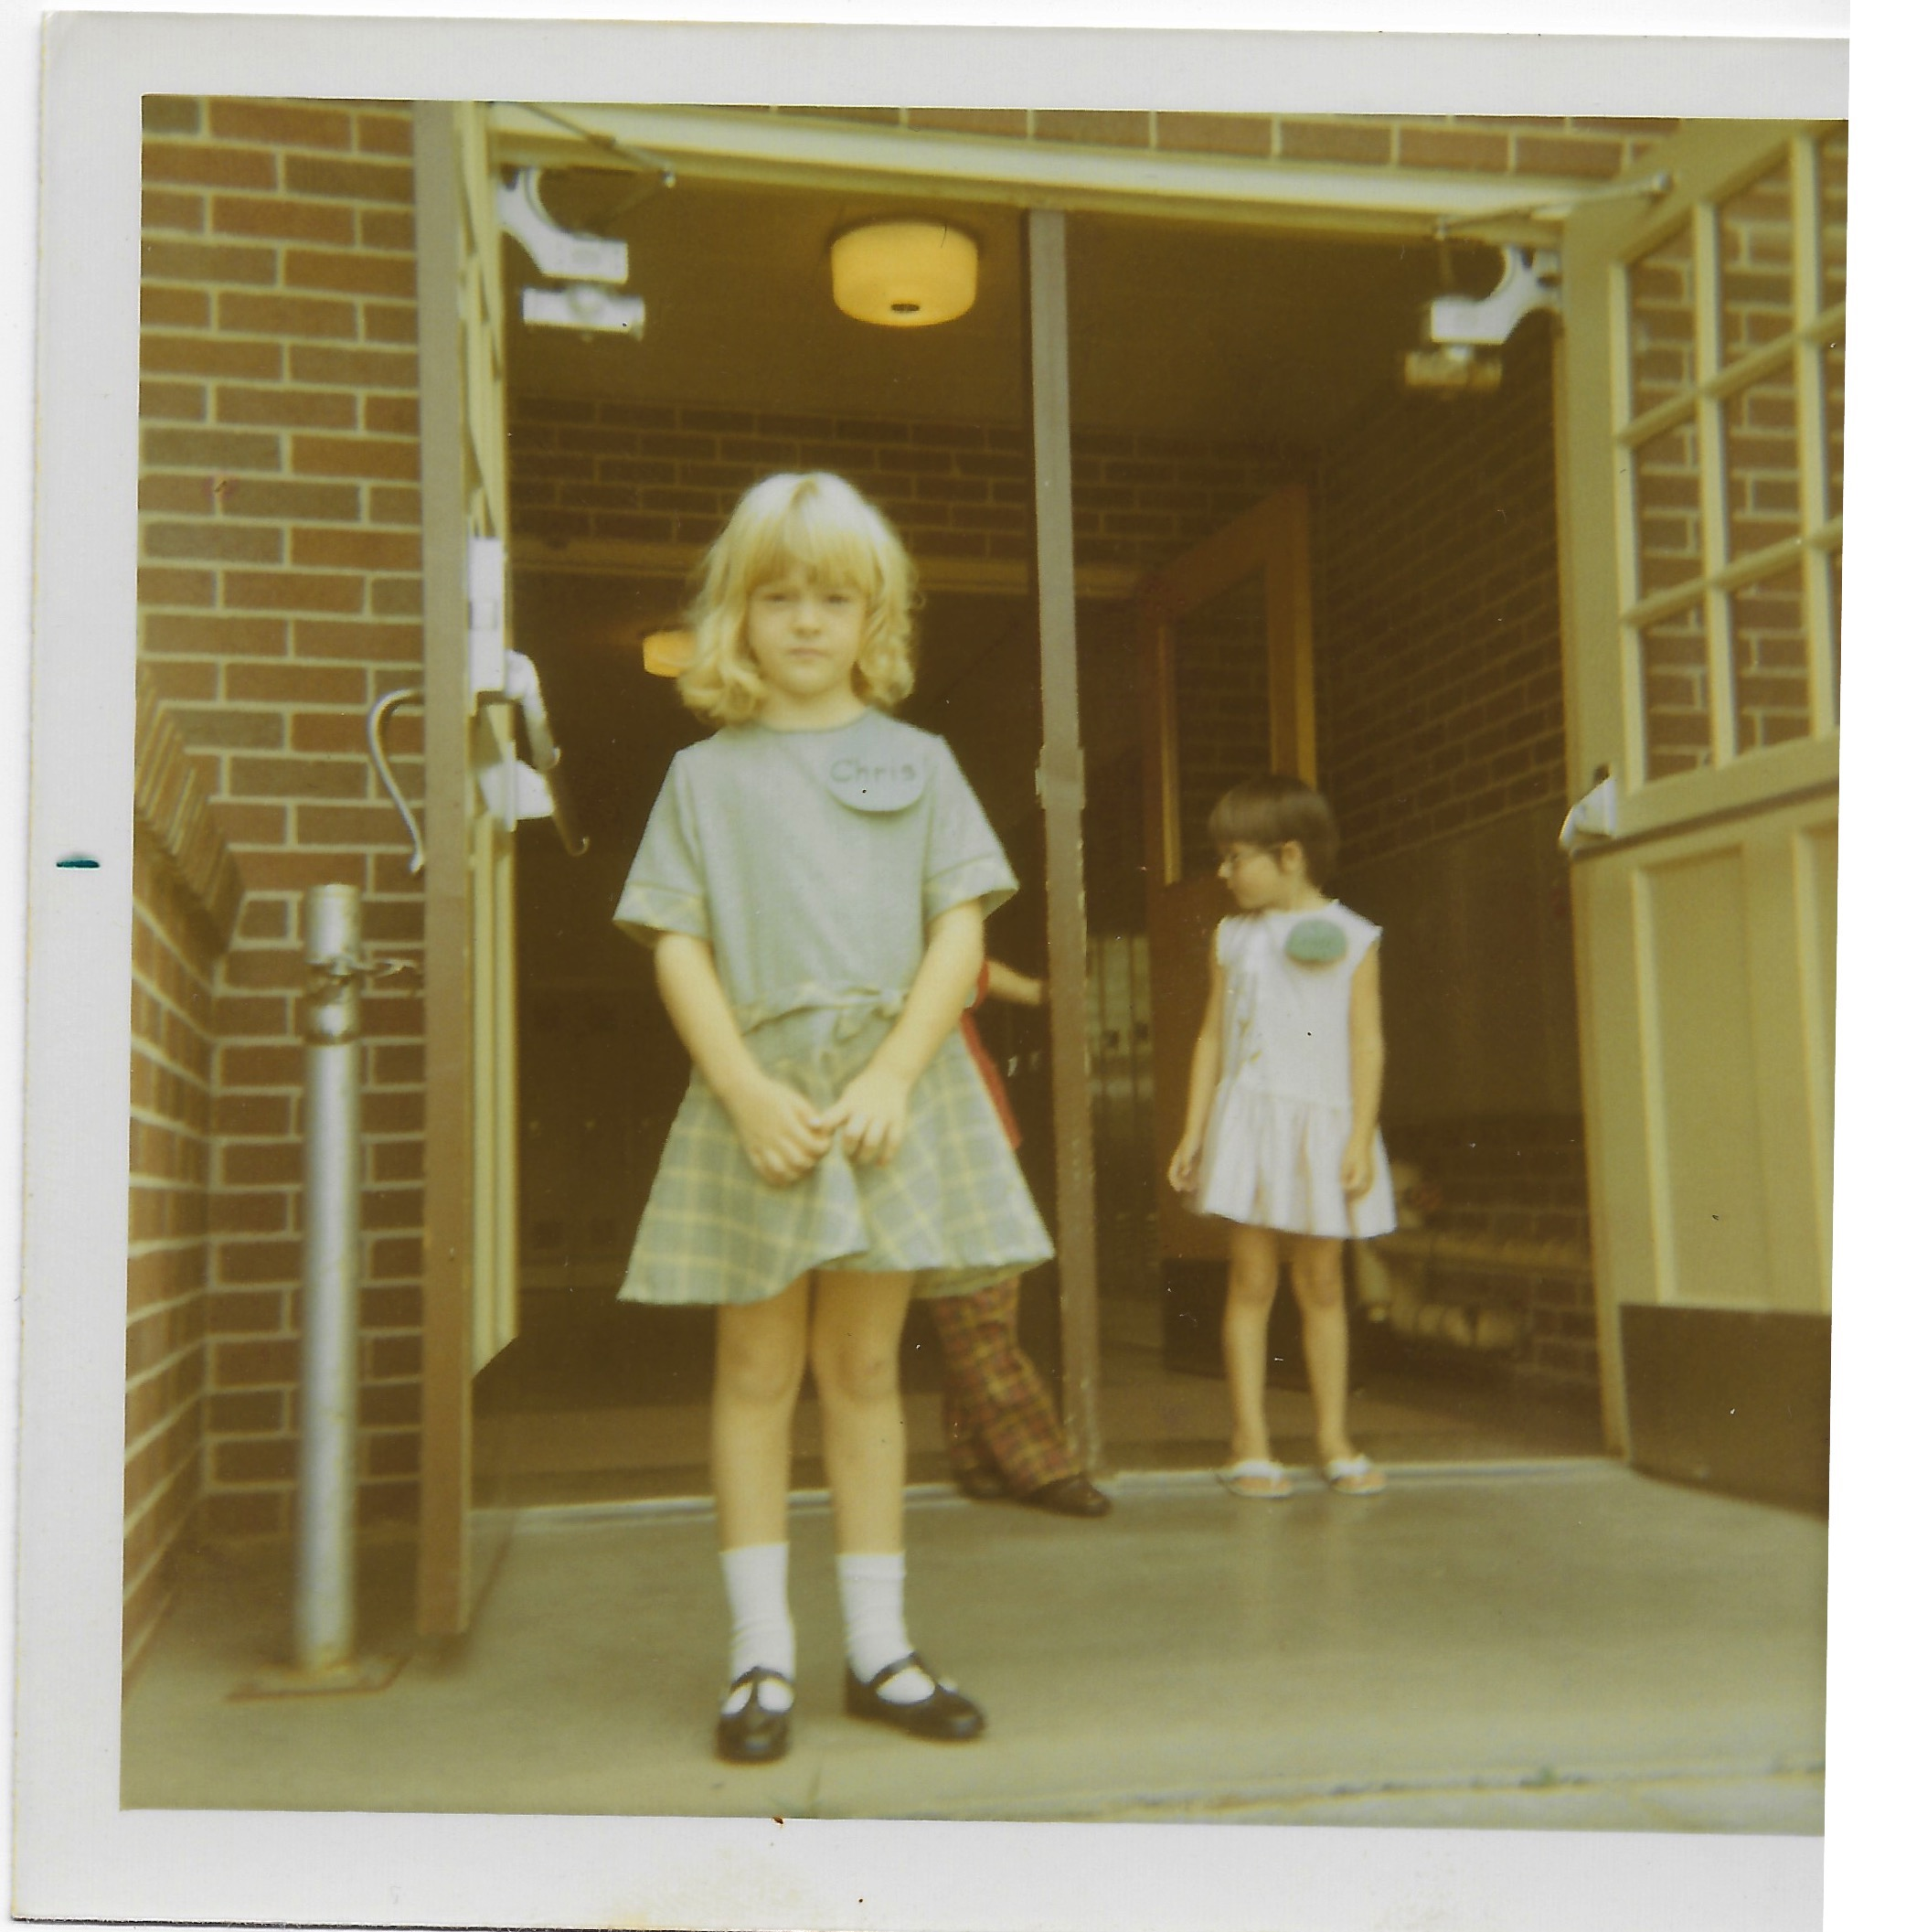 First Day Kindergarten, John Marshall Elementary. Mrs. Bottomley was possibly the best kindergarten teacher ever. She was not a young woman. She was of a different era. She came to school every day in stockings, heels and a sailor themed dress. It was the songs, the artwork, the reading, the playing under the pecan trees that, Mrs. Bottomley's fancy ways that made me fall in love with school.